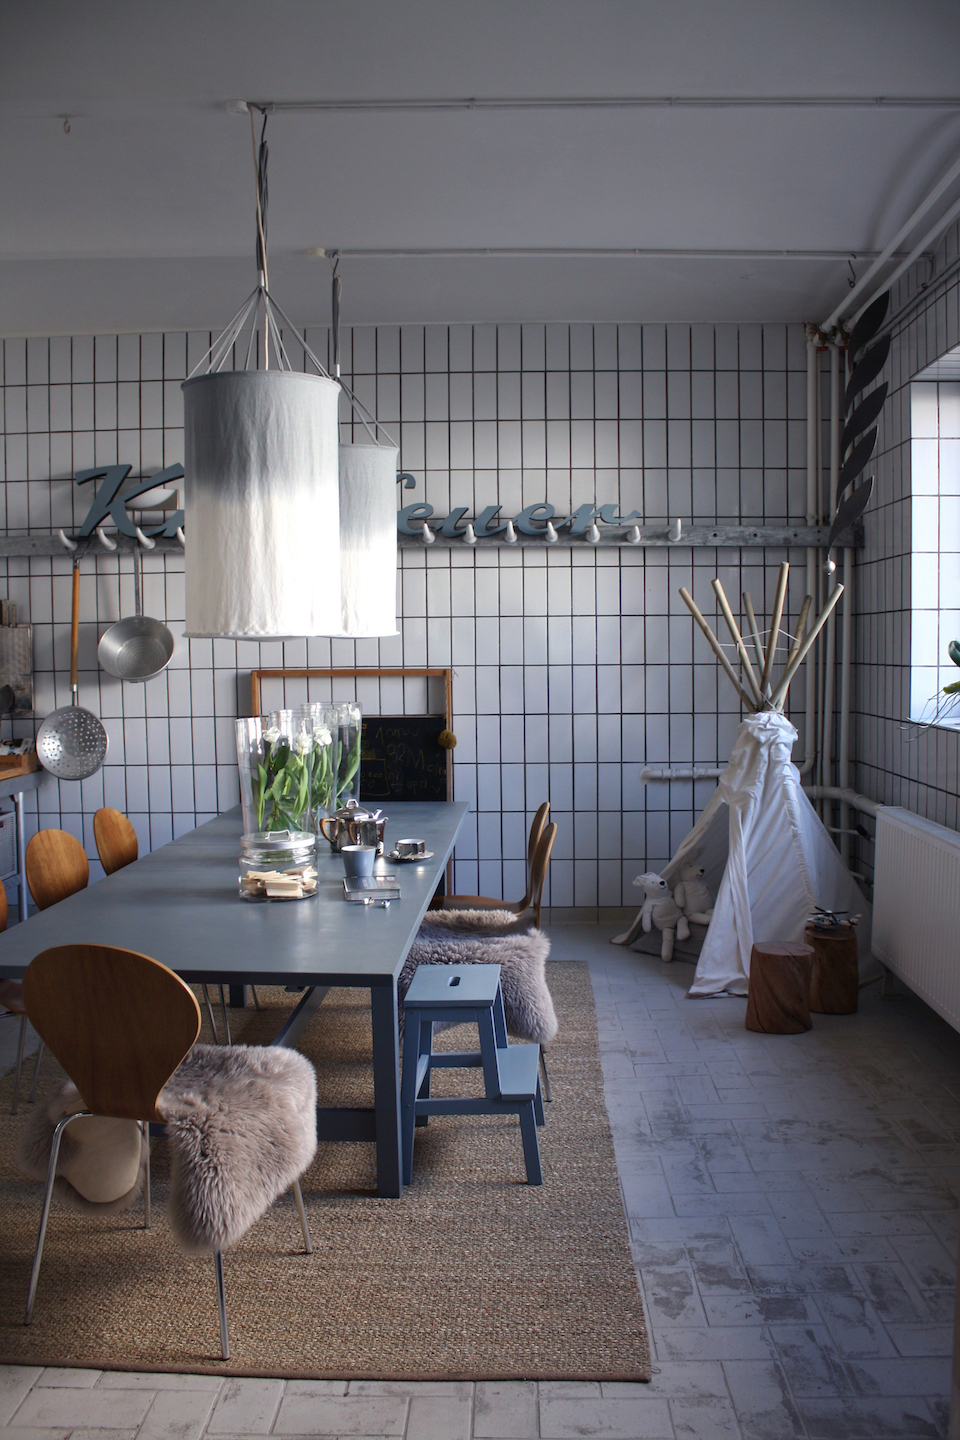 A mix of weathered barn wood and handmade textiles by Sabine herself have transformed this industrial space into a relaxed and tranquil family home.